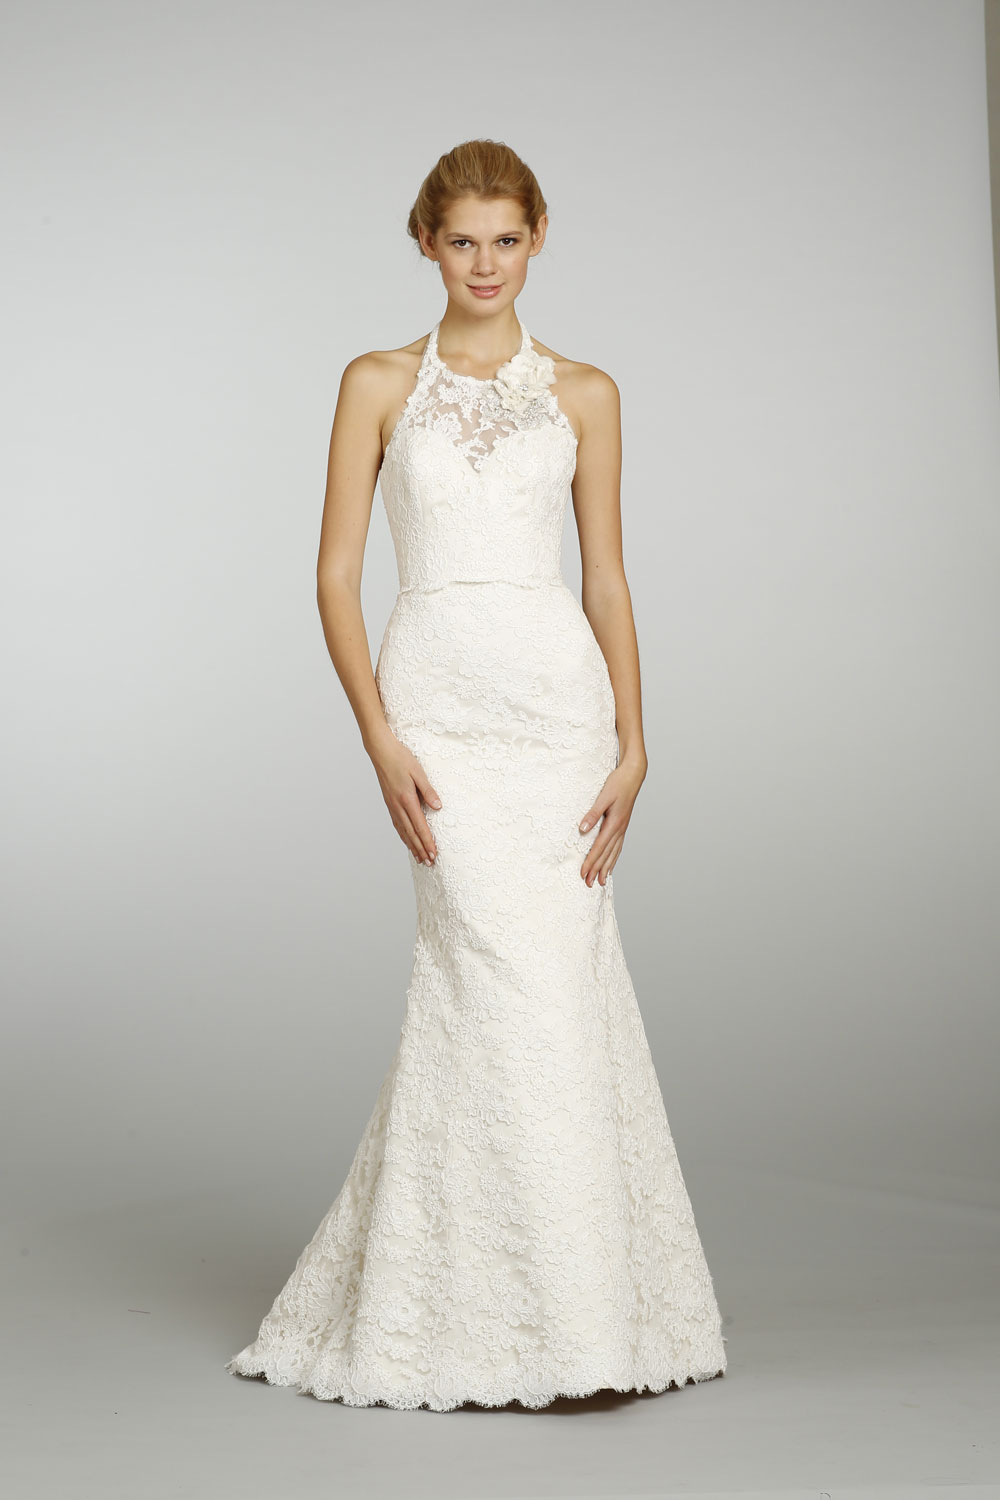 Spring-2013-wedding-dress-alvina-valenta-bridal-9302.original